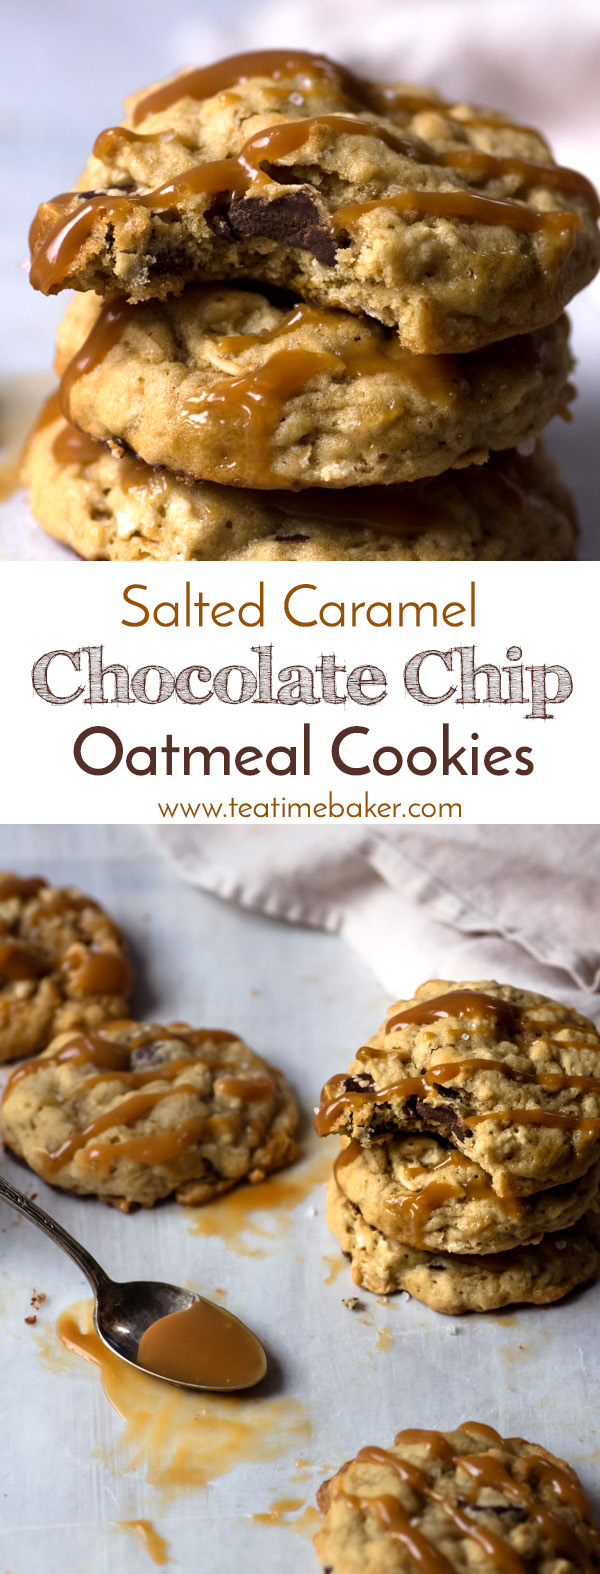 Soft and chewy oatmeal cookies are kicked up a notch with dark chocolate chips, a drizzling of homemade caramel, and a sprinkle of sea salt. Super easy chocolate chip oatmeal cookie recipe, no chilling required! | The Teatime Baker | Chocolate Chip Oatmeal Cookie Recipe | Soft and chewy chocolate chip cookies | Homemade Salted Caramel | #saltedcaramelchocolatechipcookierecipe #chocolatechipoatmealcookies